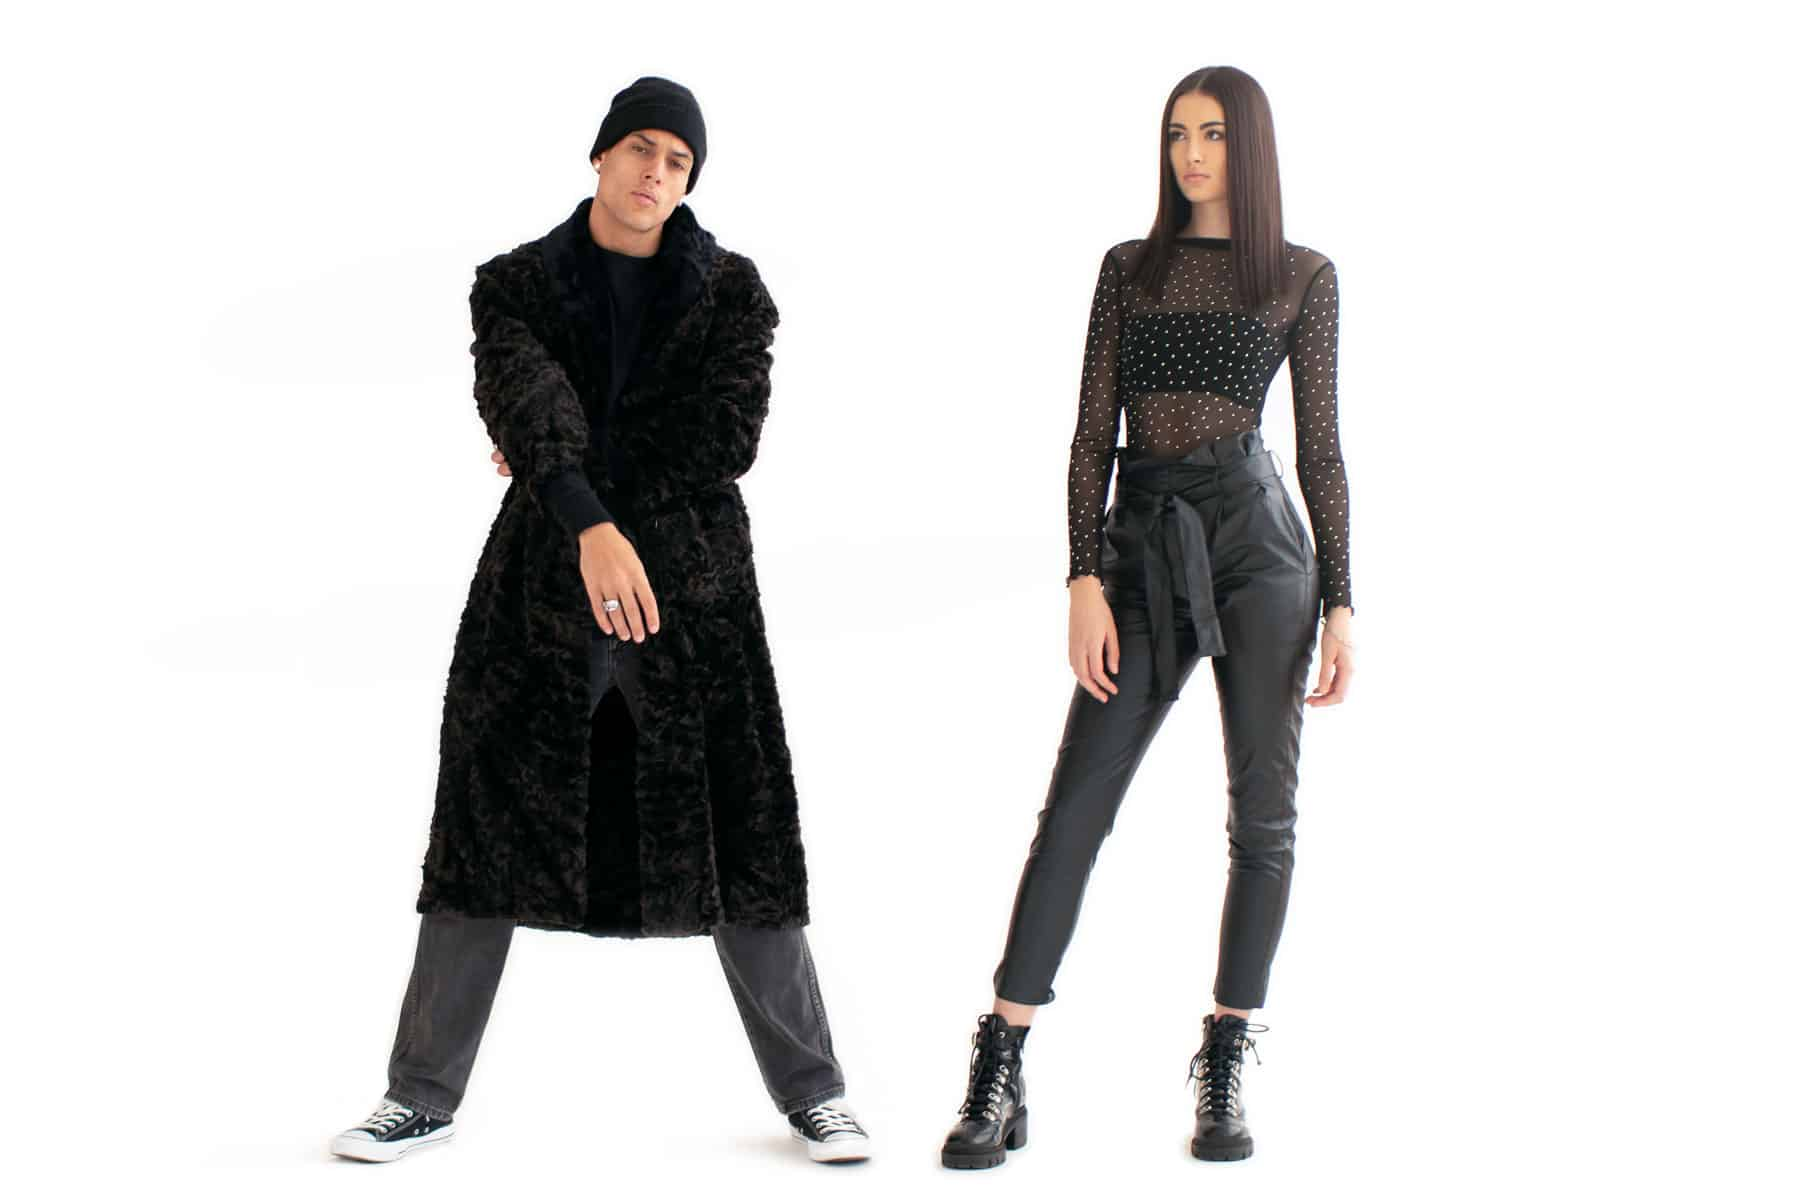 Man and woman standing apart from each other wearing all black